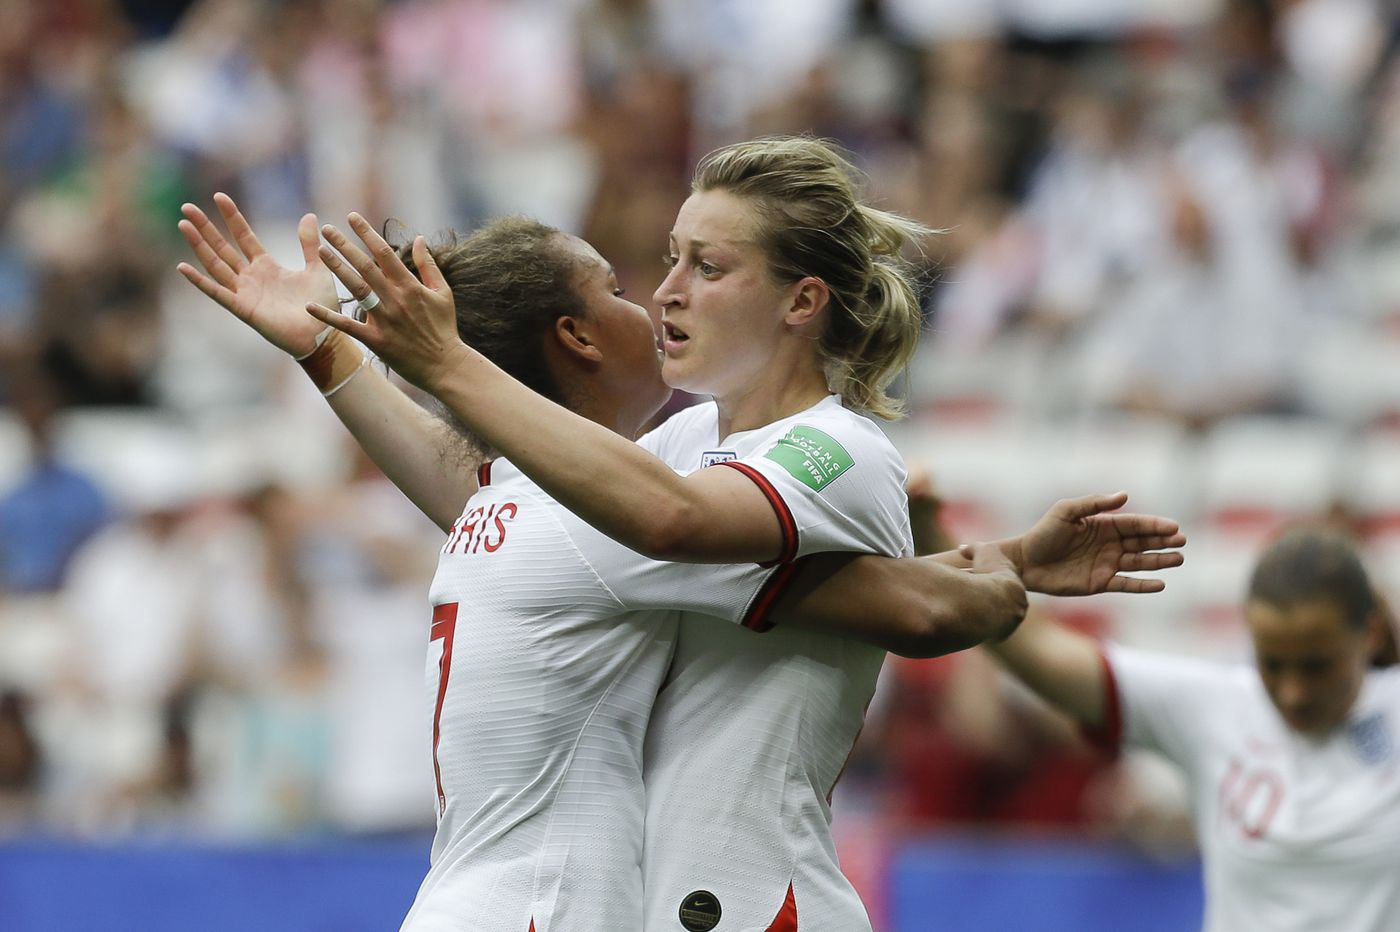 England holds off Scotland's upset bid for 2-1 win in Women's World Cup opener